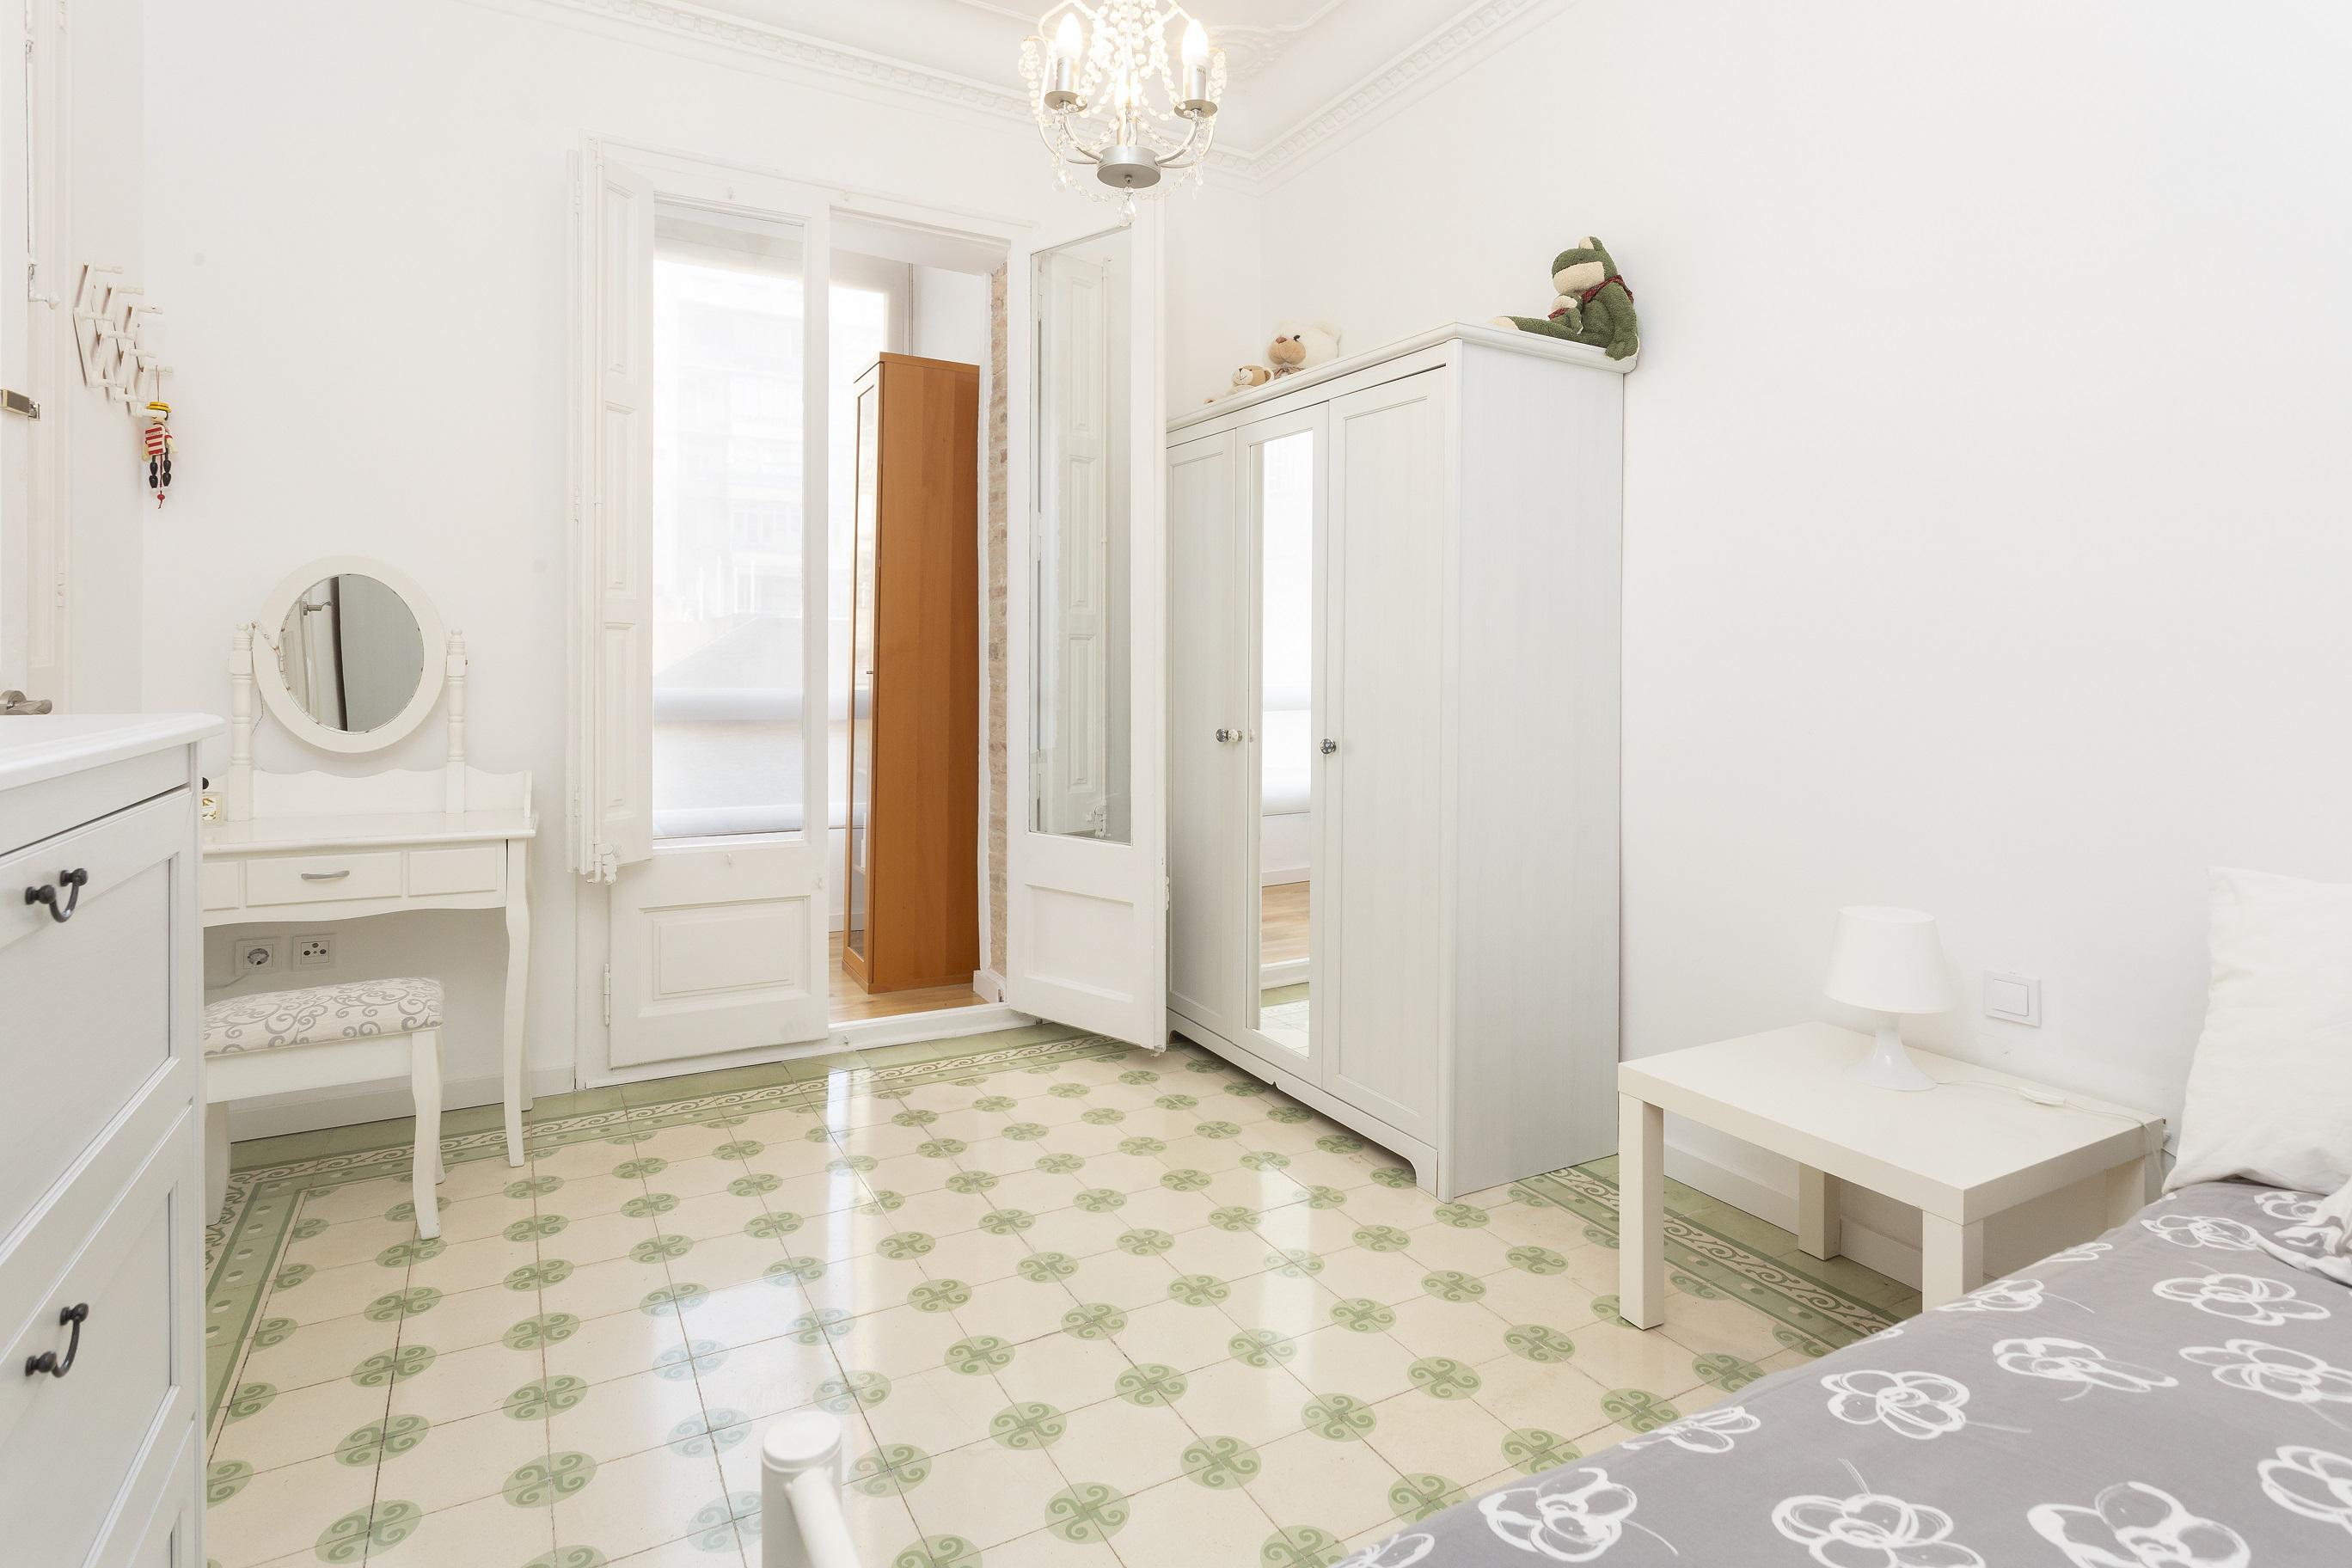 236190 Apartment for sale in Eixample, Old Left Eixample 12